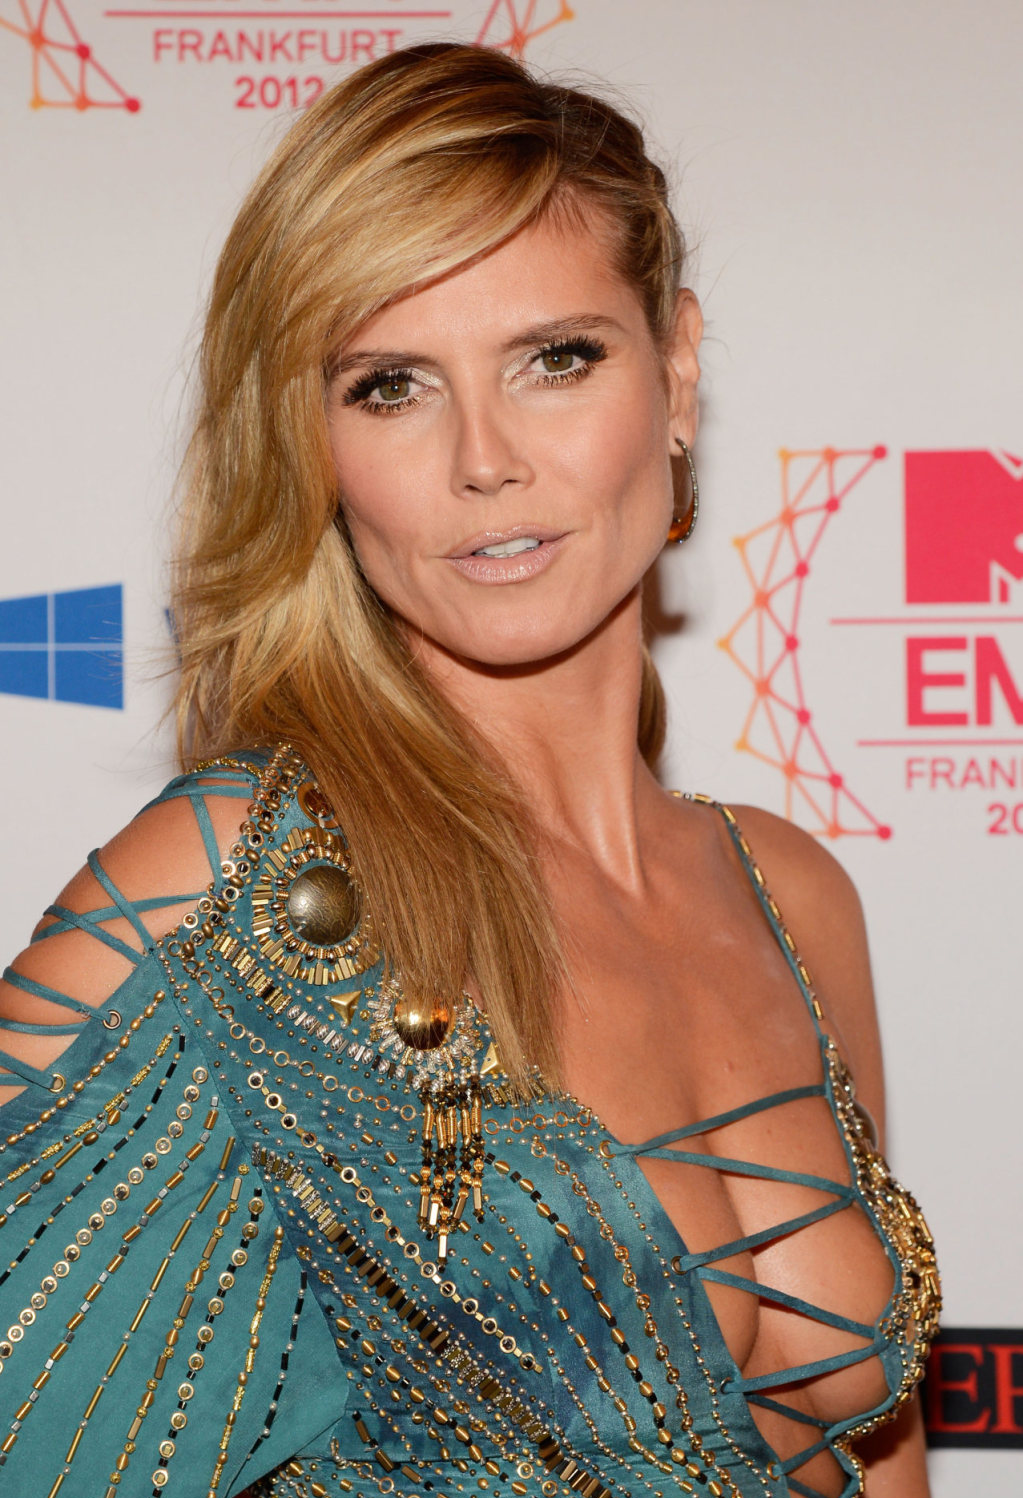 Heidi Klum – MTV Europe Music Awards 2012 In Frankfurt 09  Full